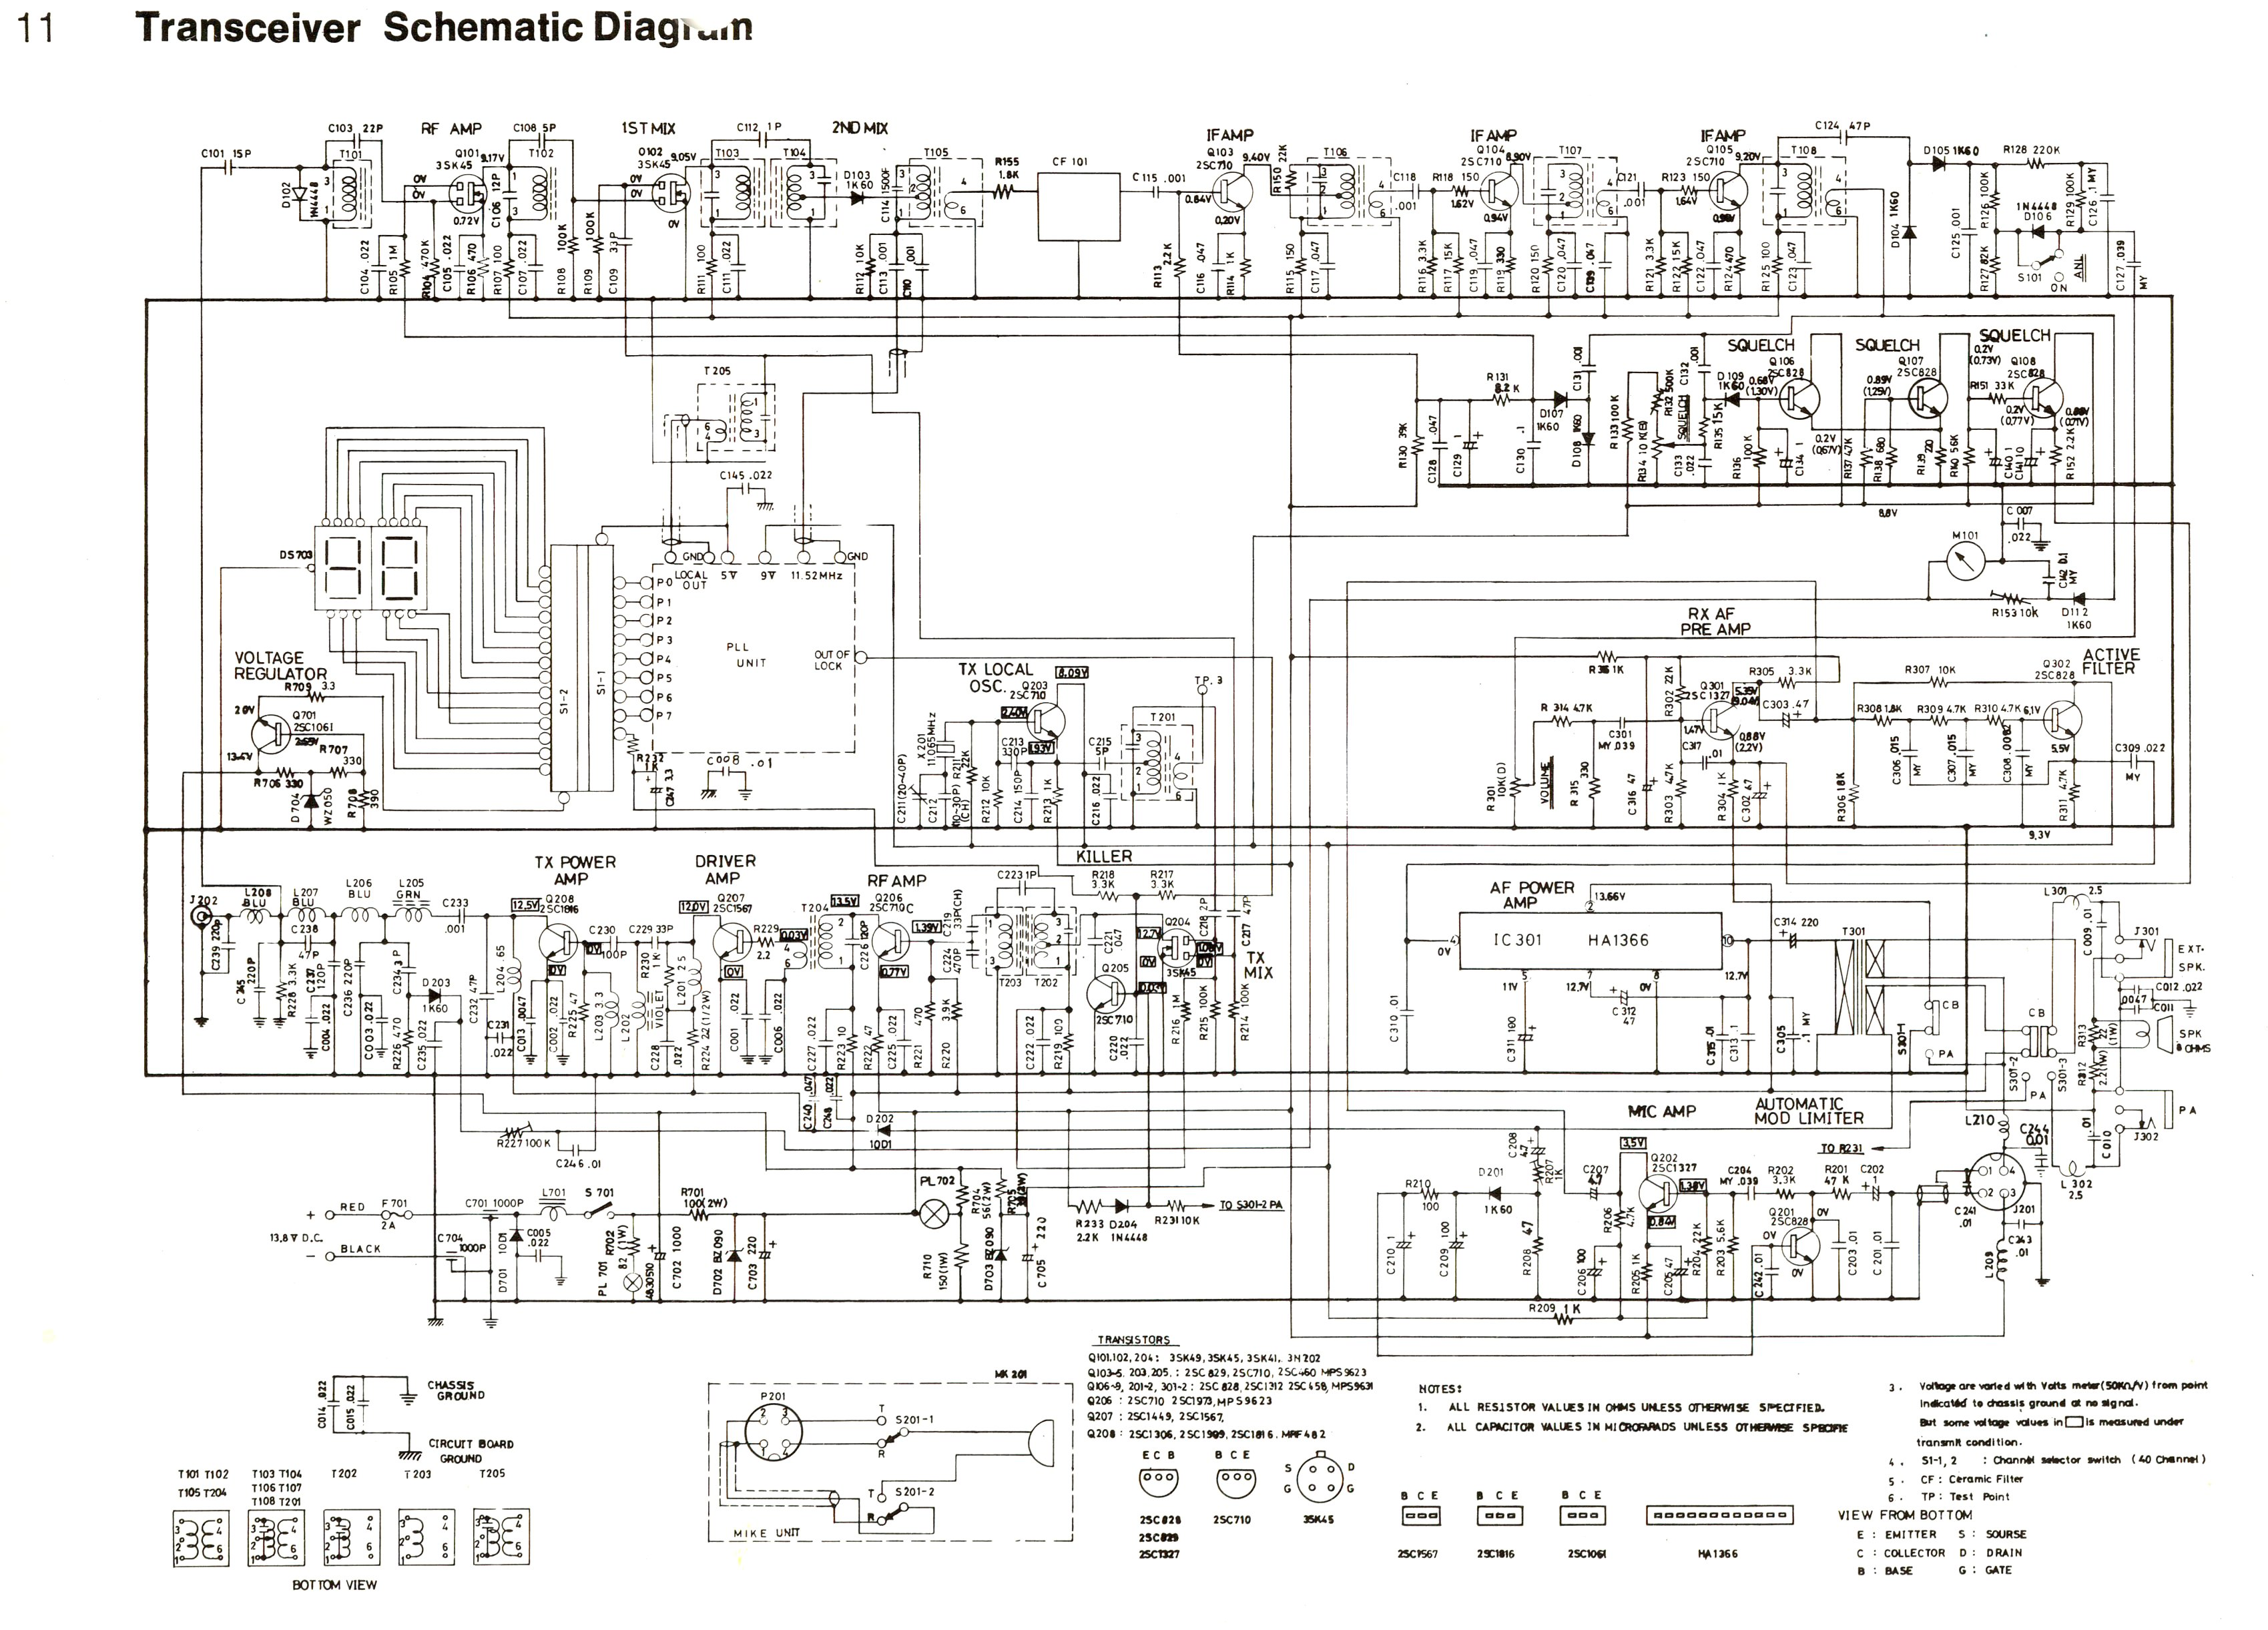 sparkomatic_cb1040_sch sparkomatic radio wiring diagrams ace wiring diagram \u2022 wiring performance teknique icbm 774 wiring diagram at suagrazia.org